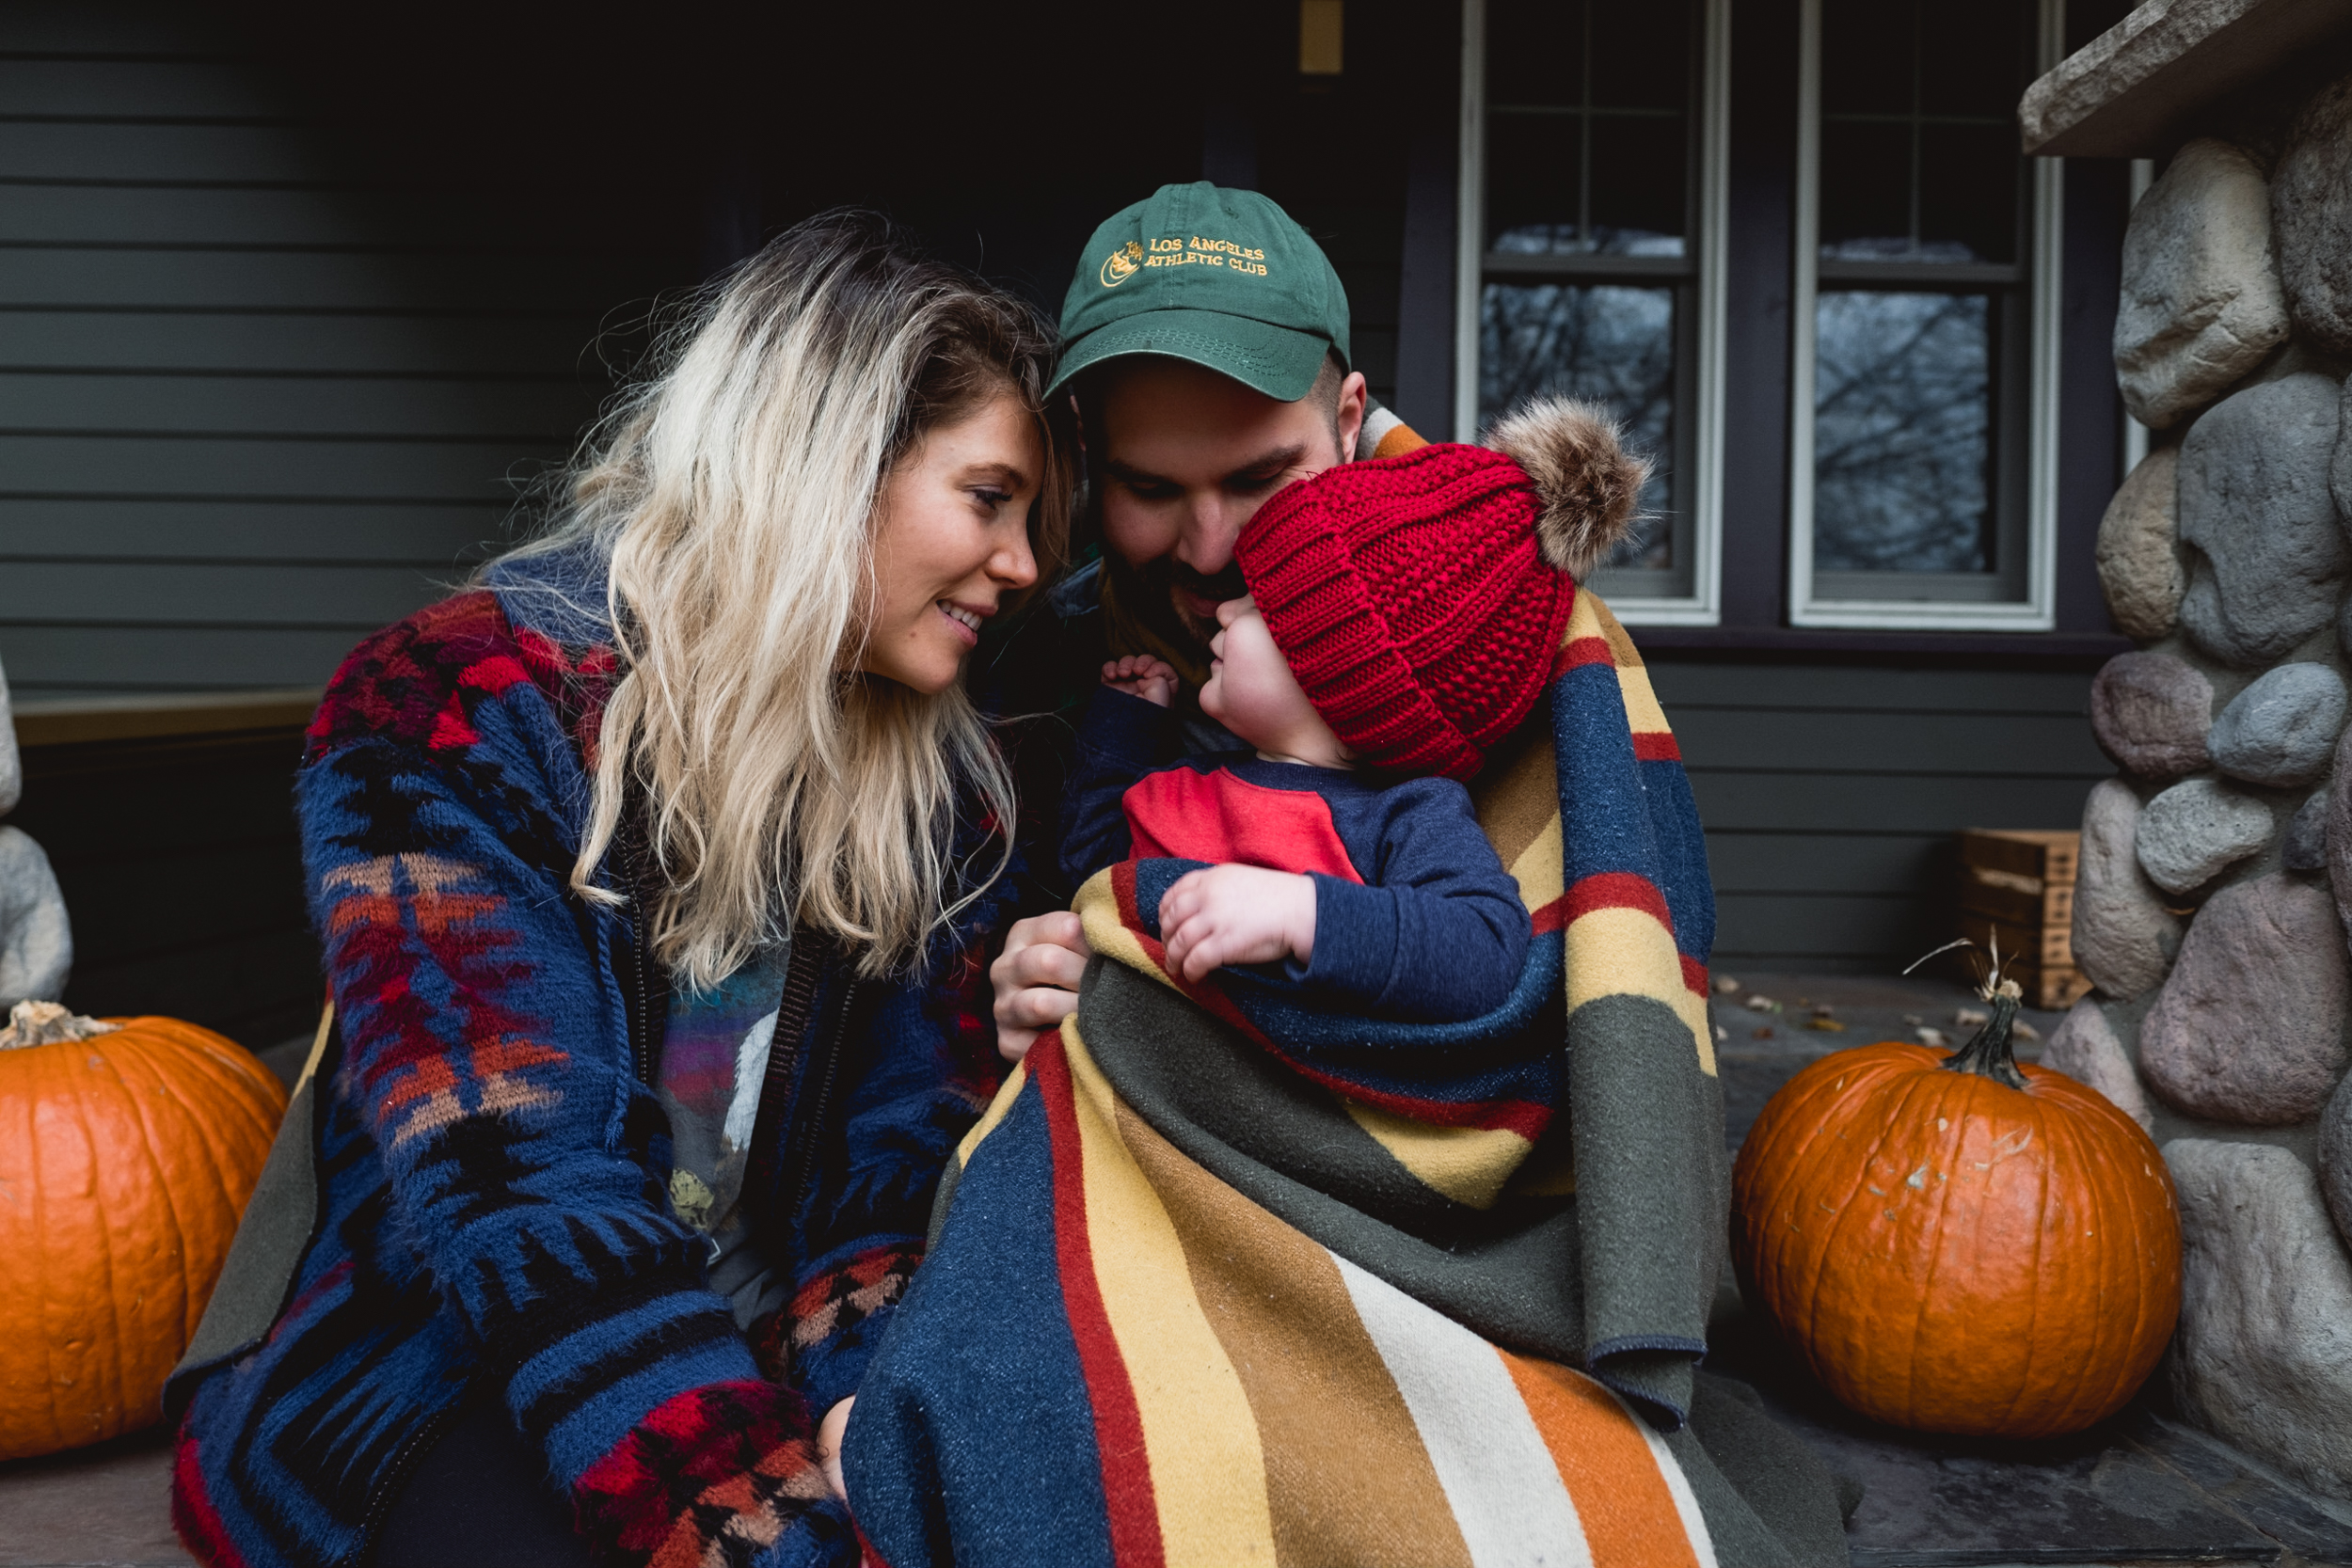 Family on fall decorated porch. Metro Detroit Royal Oak Family Photographer.